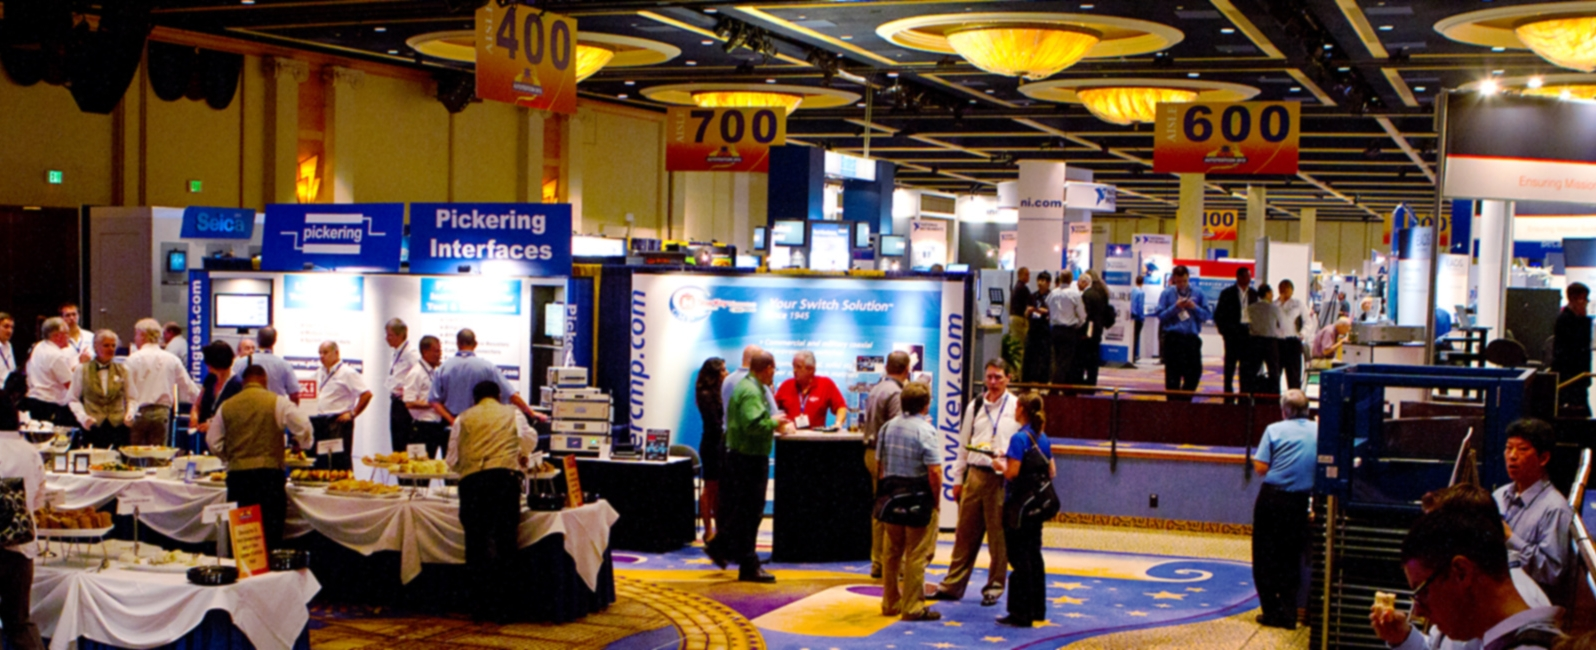 AUTOTESTCON EXHIBIT HALL